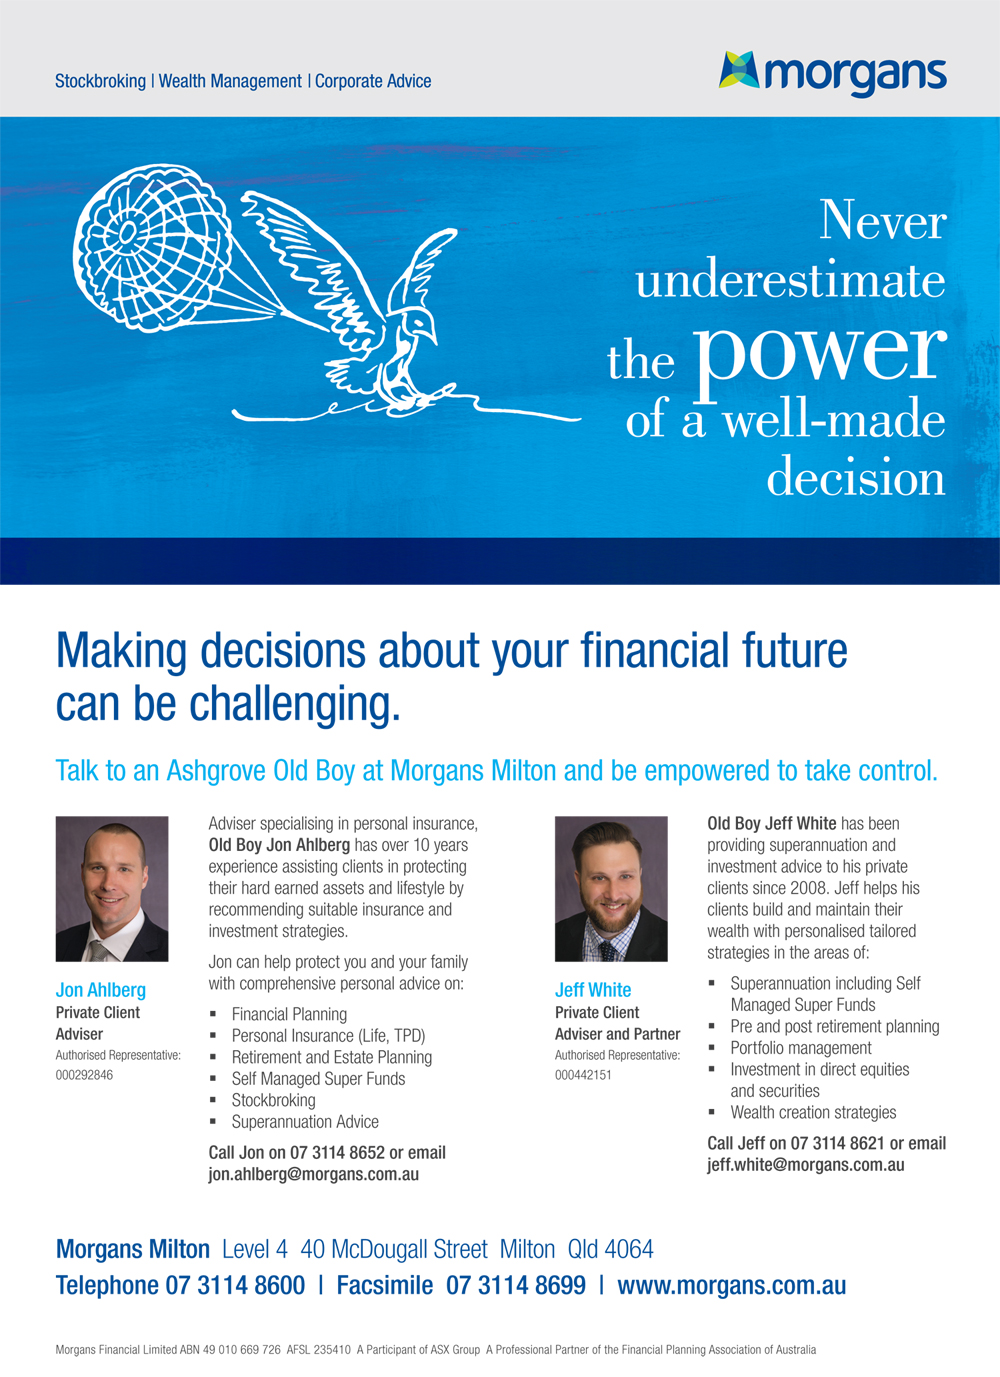 Making Decisions about your Financial Future